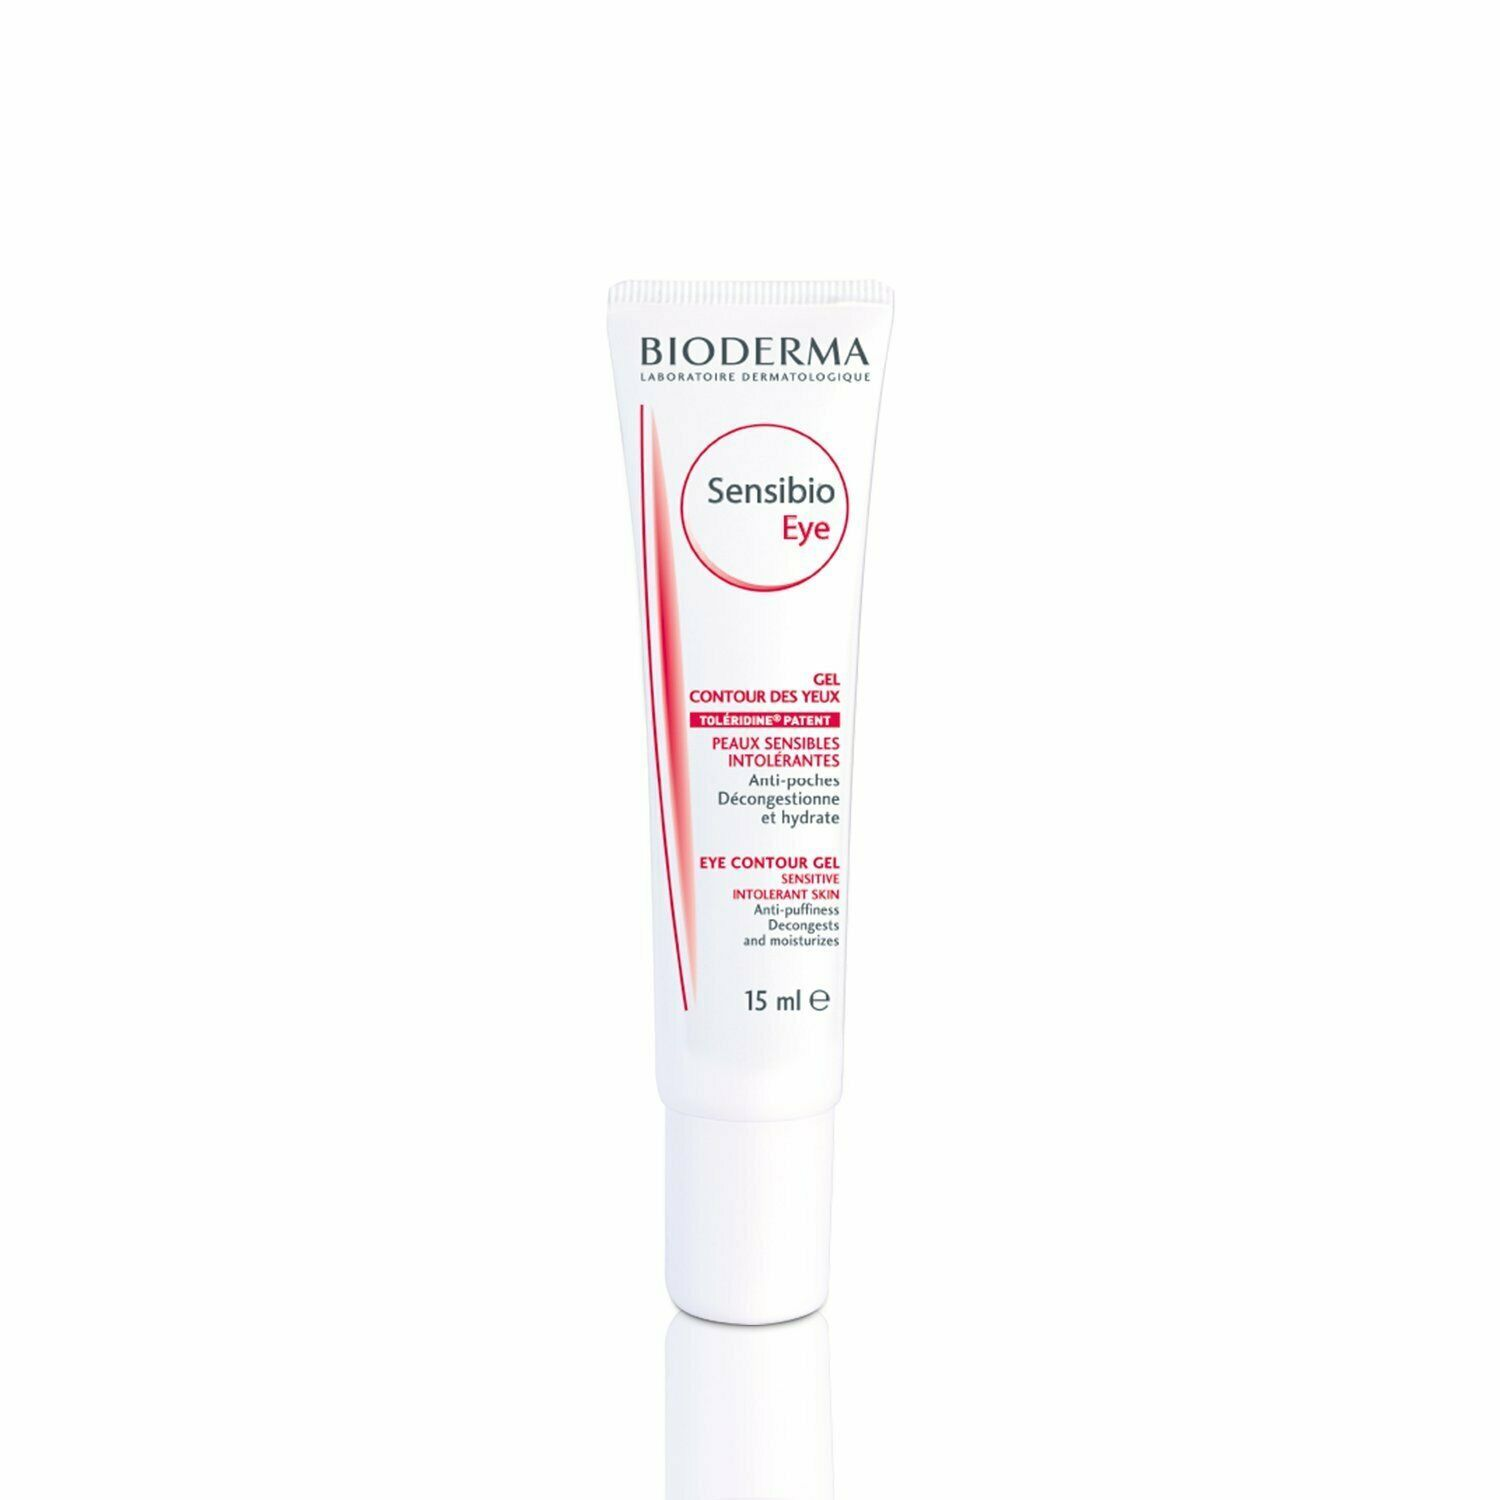 Bioderma San Sibio Eye Care Gel Cream From Japan In 2020 With